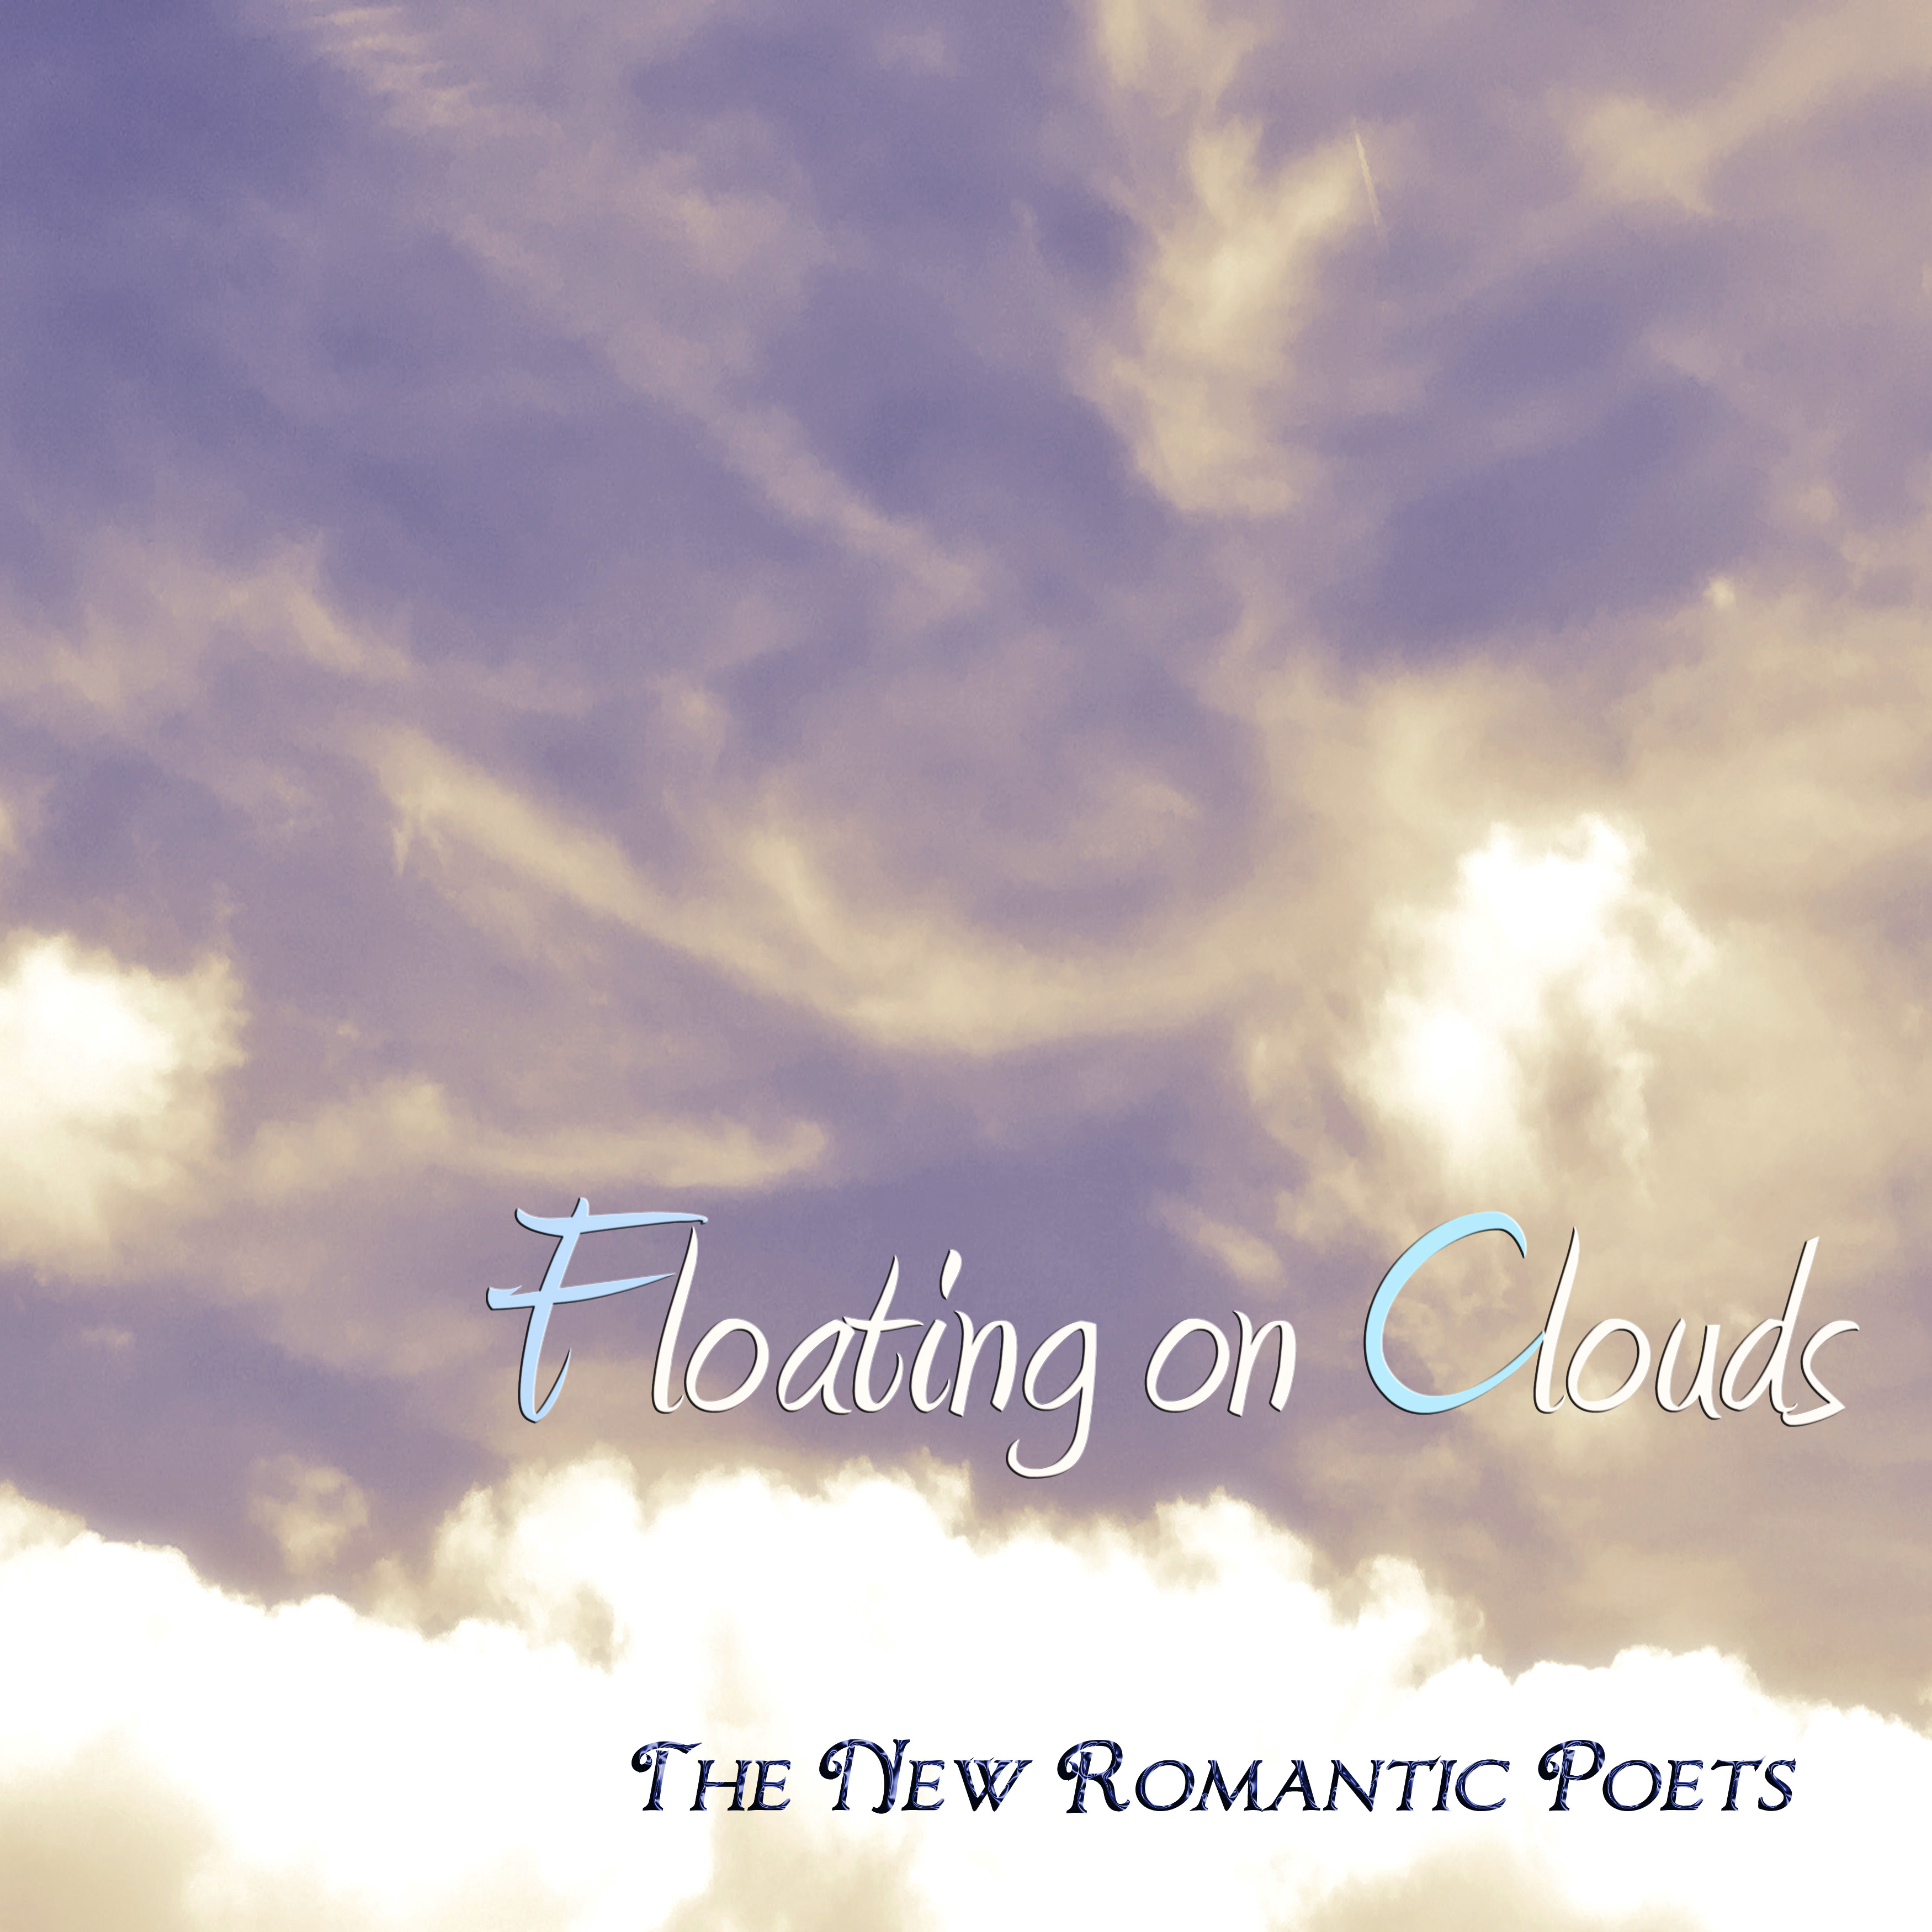 Floating on Clouds by The New Romantic Poets